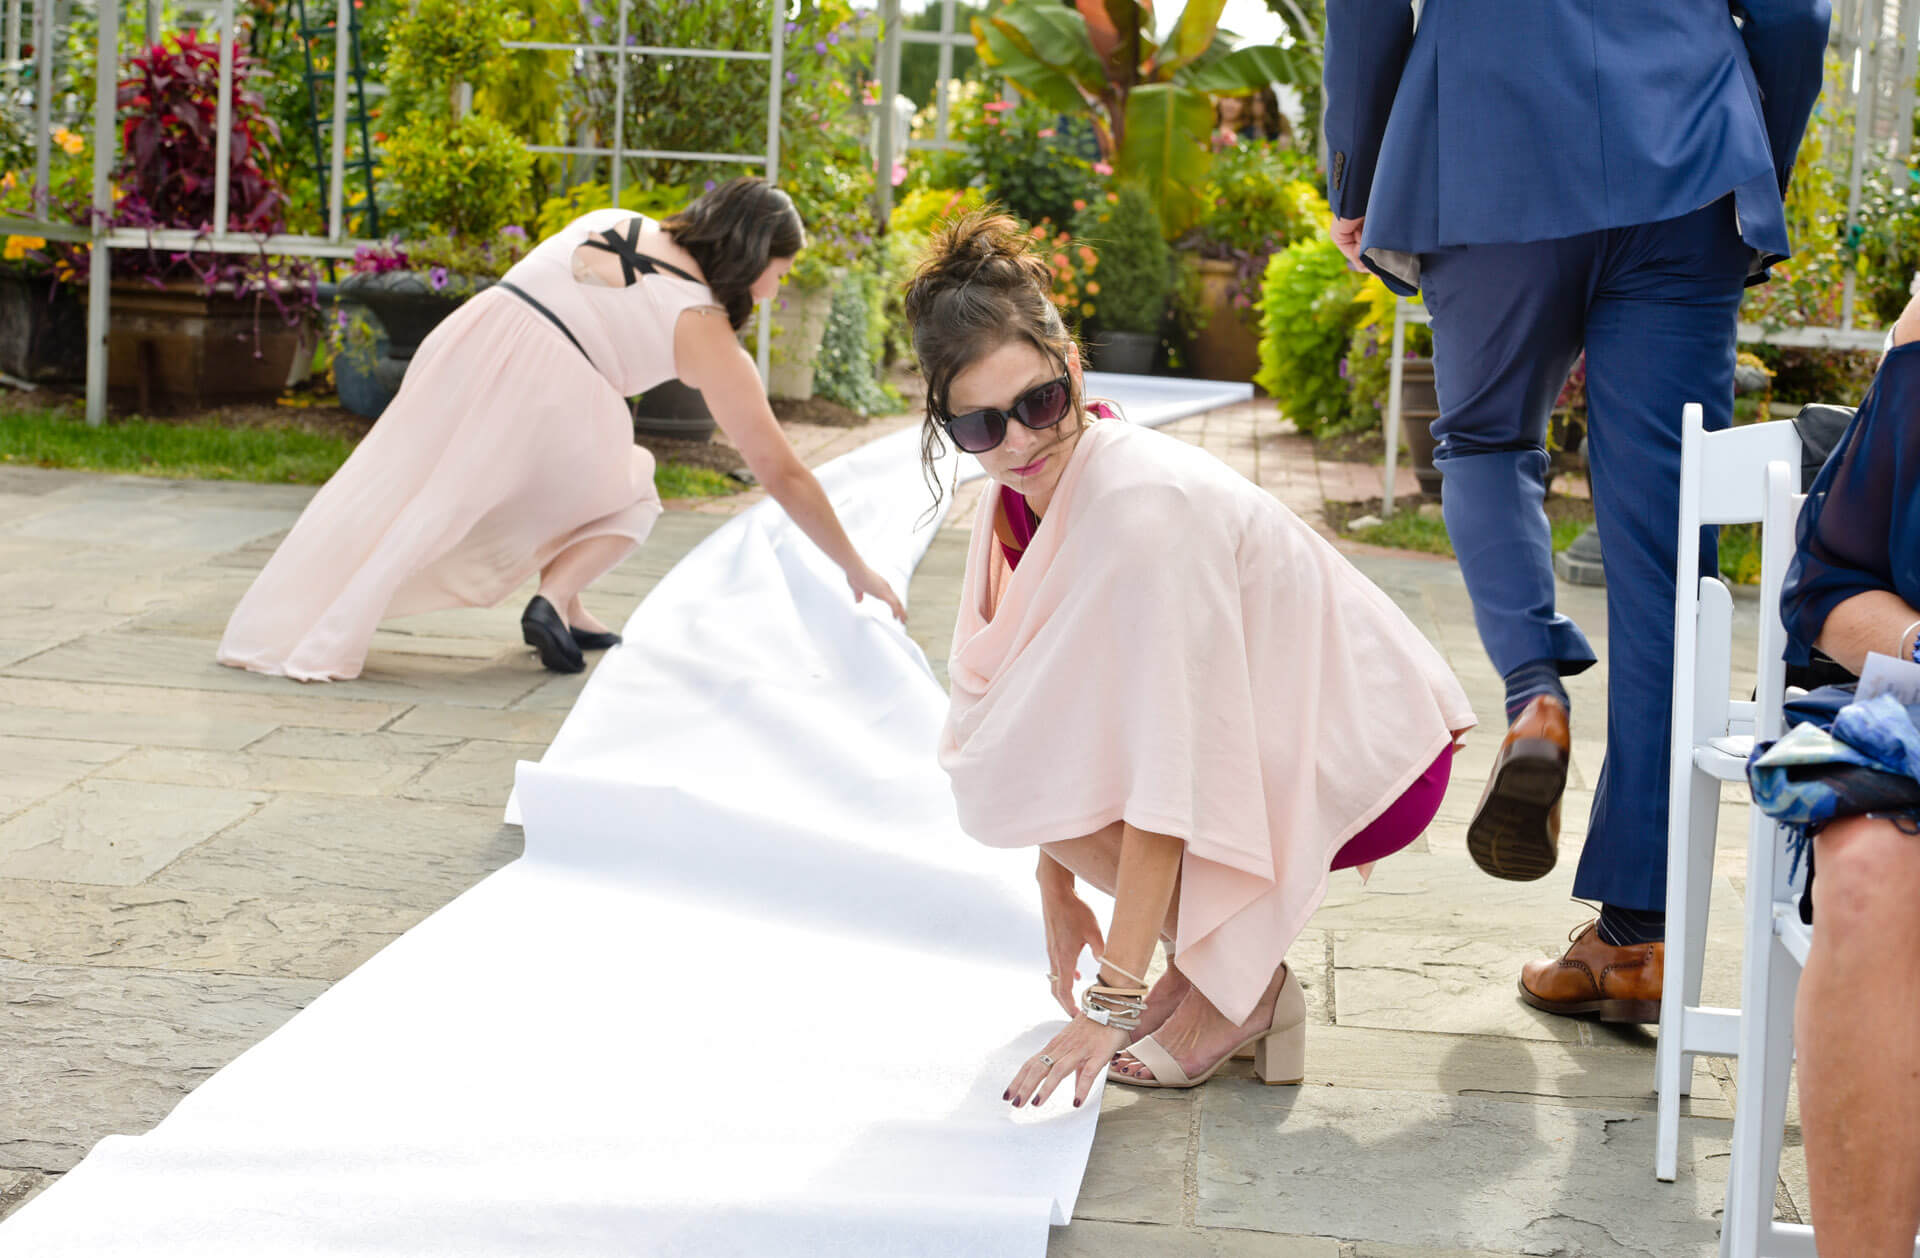 Documentary wedding photo of guests jumping in to adjust aisle runner after the wind picks up in Taylor, Michigan.